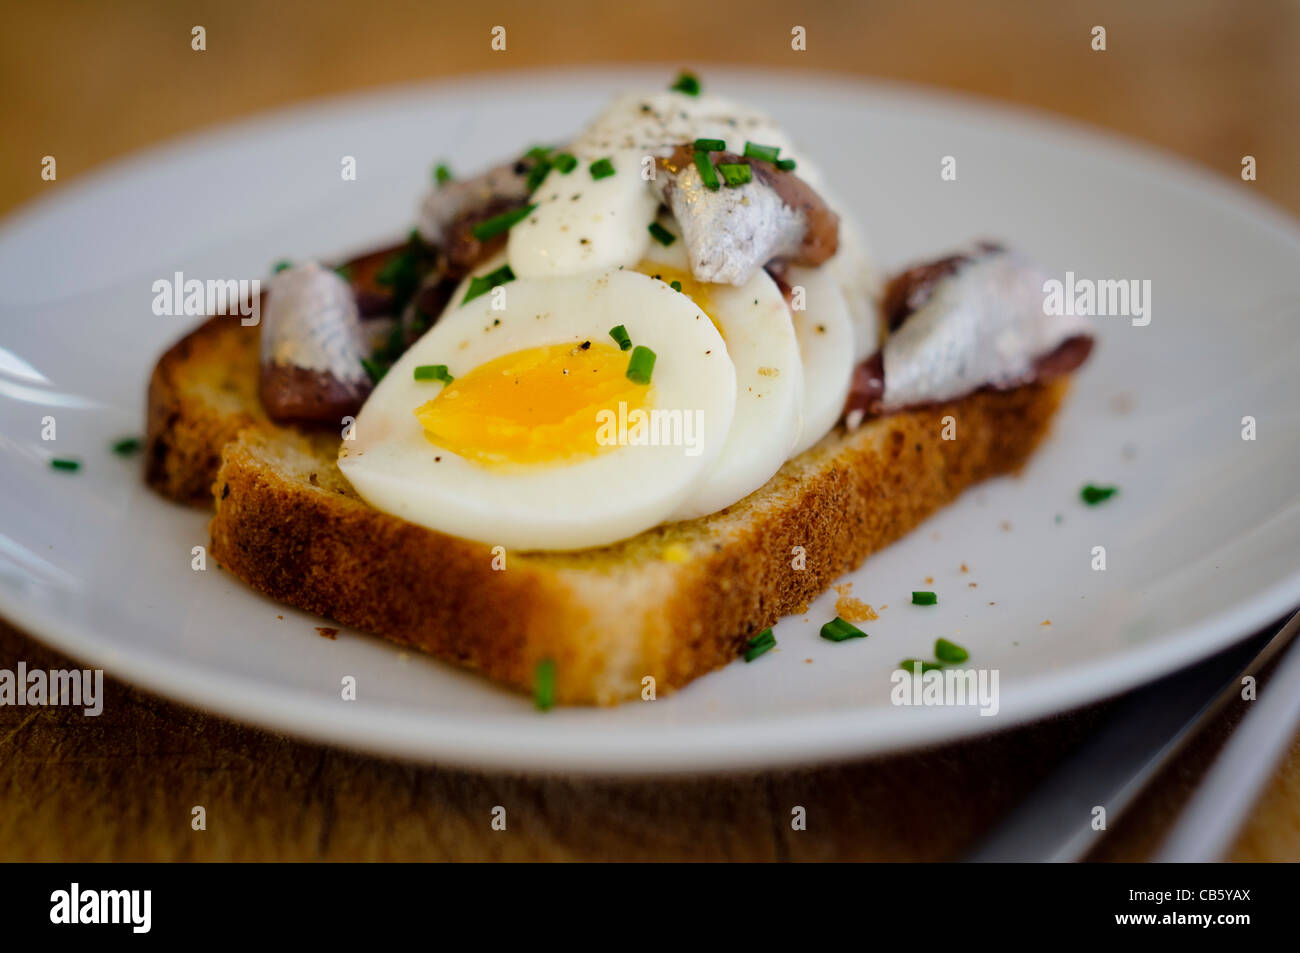 A Swedish classic open faced sandwich with sliced, hardboiled egg, topped with canned Swedish ansjovis (pickled - Stock Image